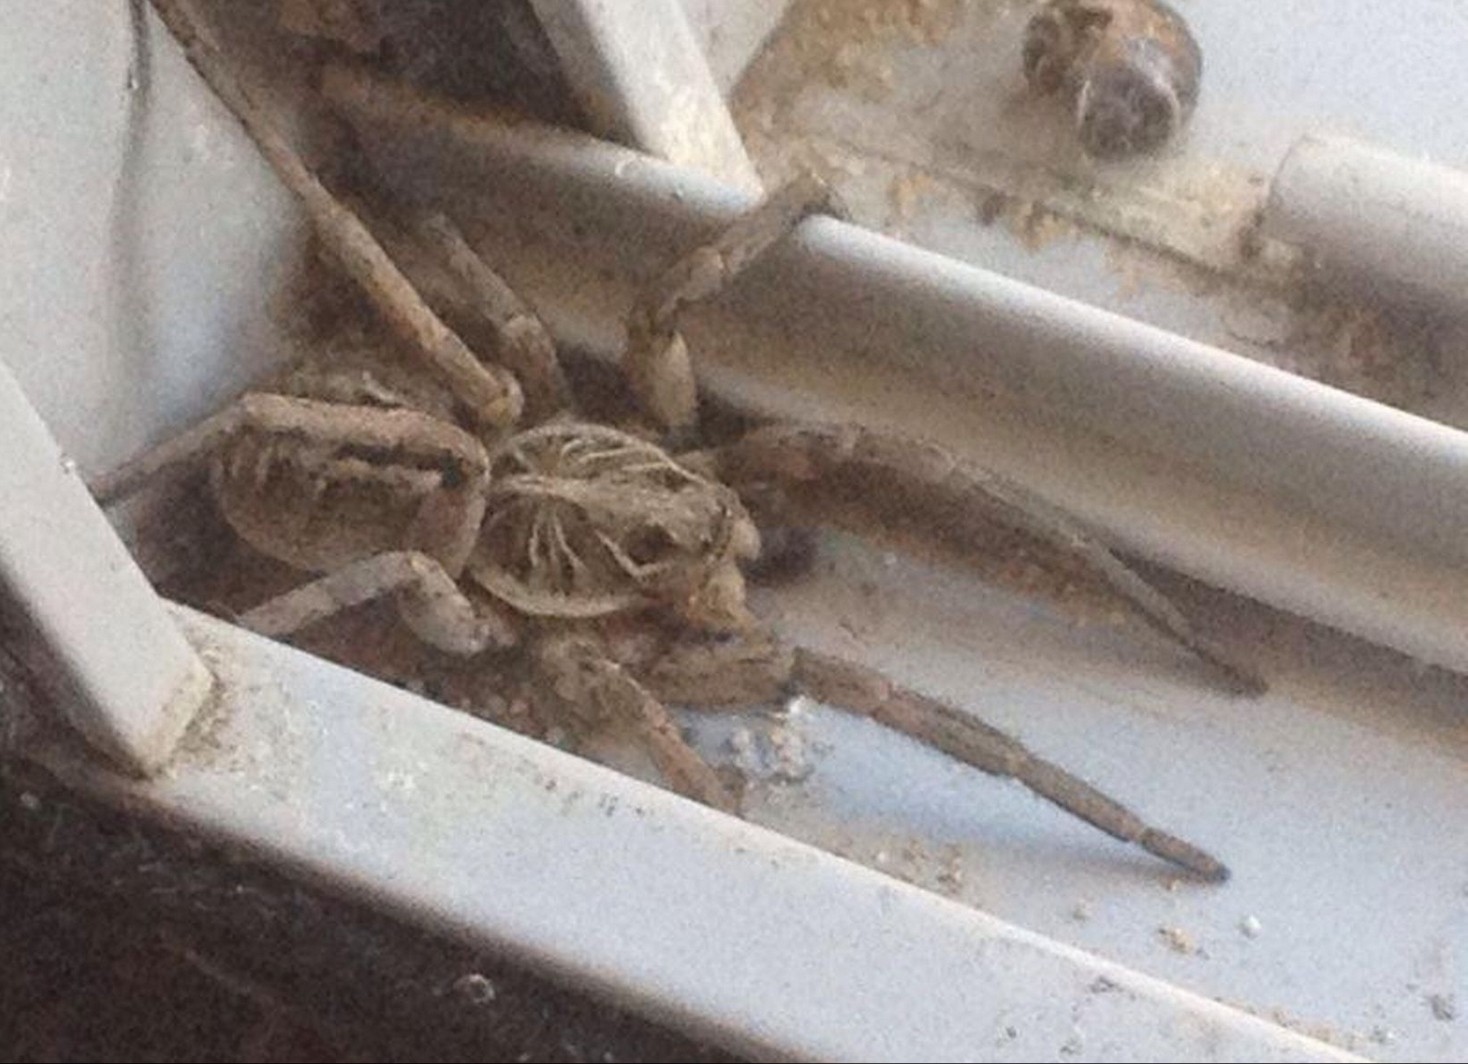 Giant Horny Mouse Sized Spiders Set To Invade UK Homes UNILAD Screen Shot 2015 08 20 at 16.41.526